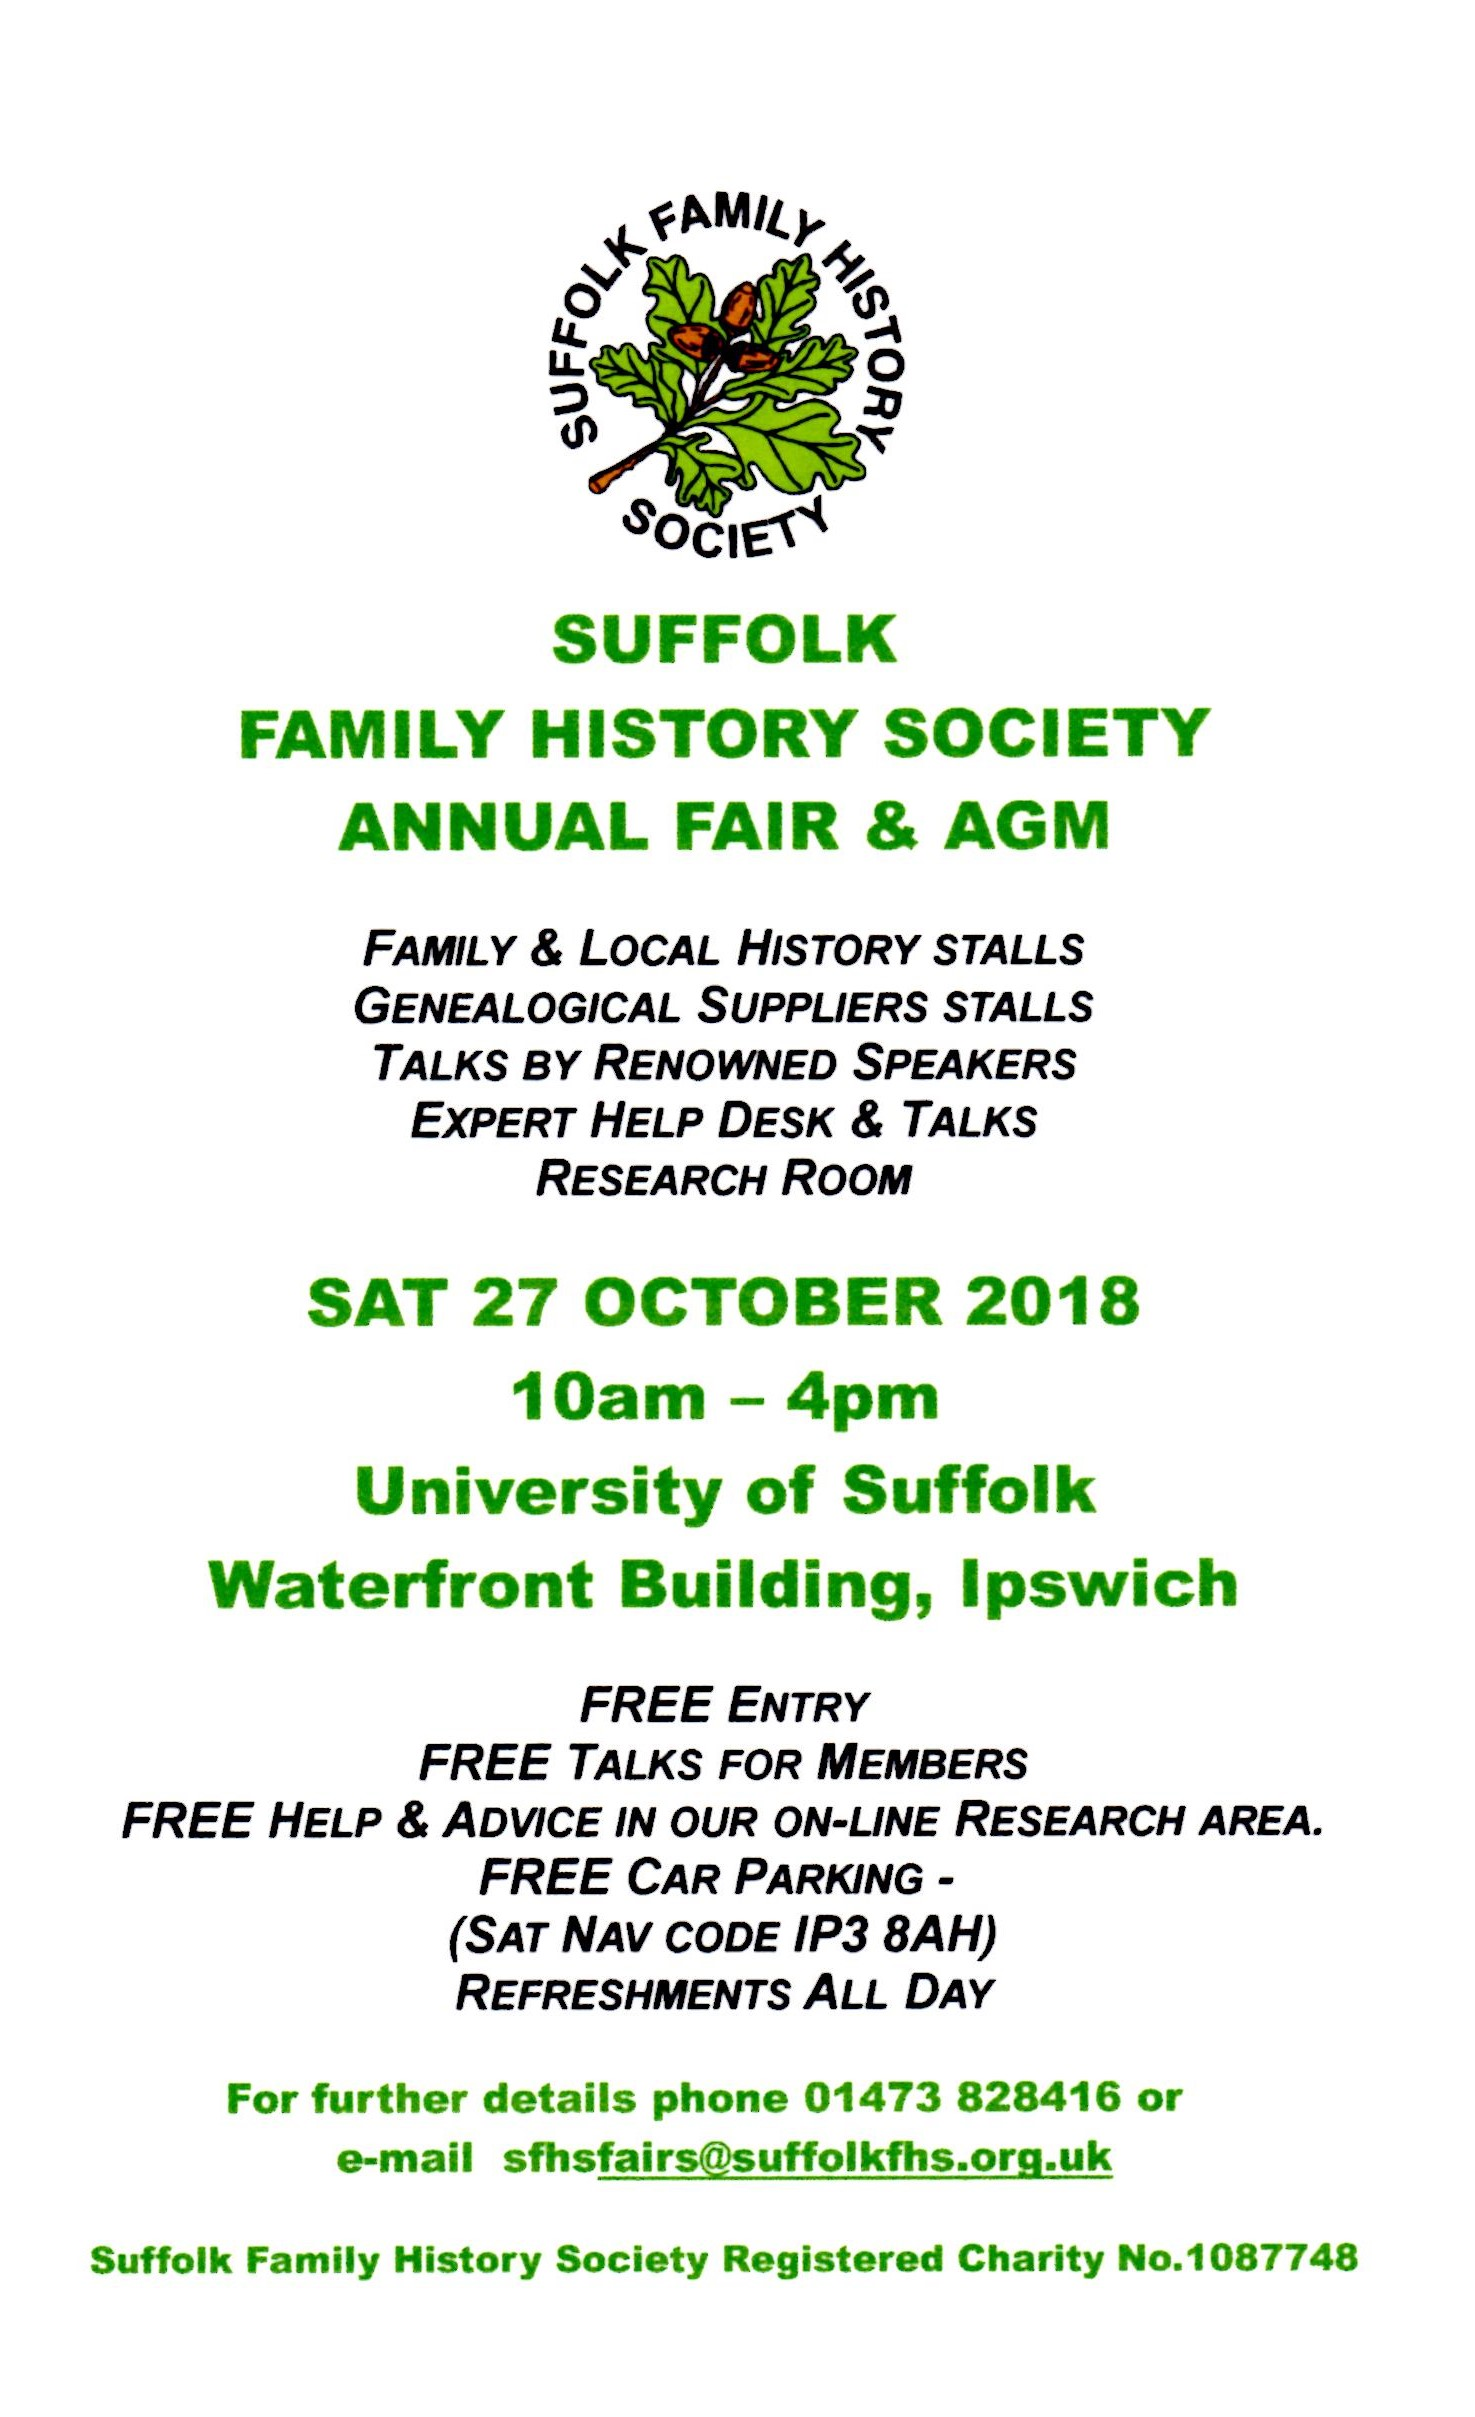 Fair 2018 sfhs suffolk family history society annual family history fair and agm will be held on 27 october 2018 at university of suffolk waterfront building 19 neptune quay publicscrutiny Gallery